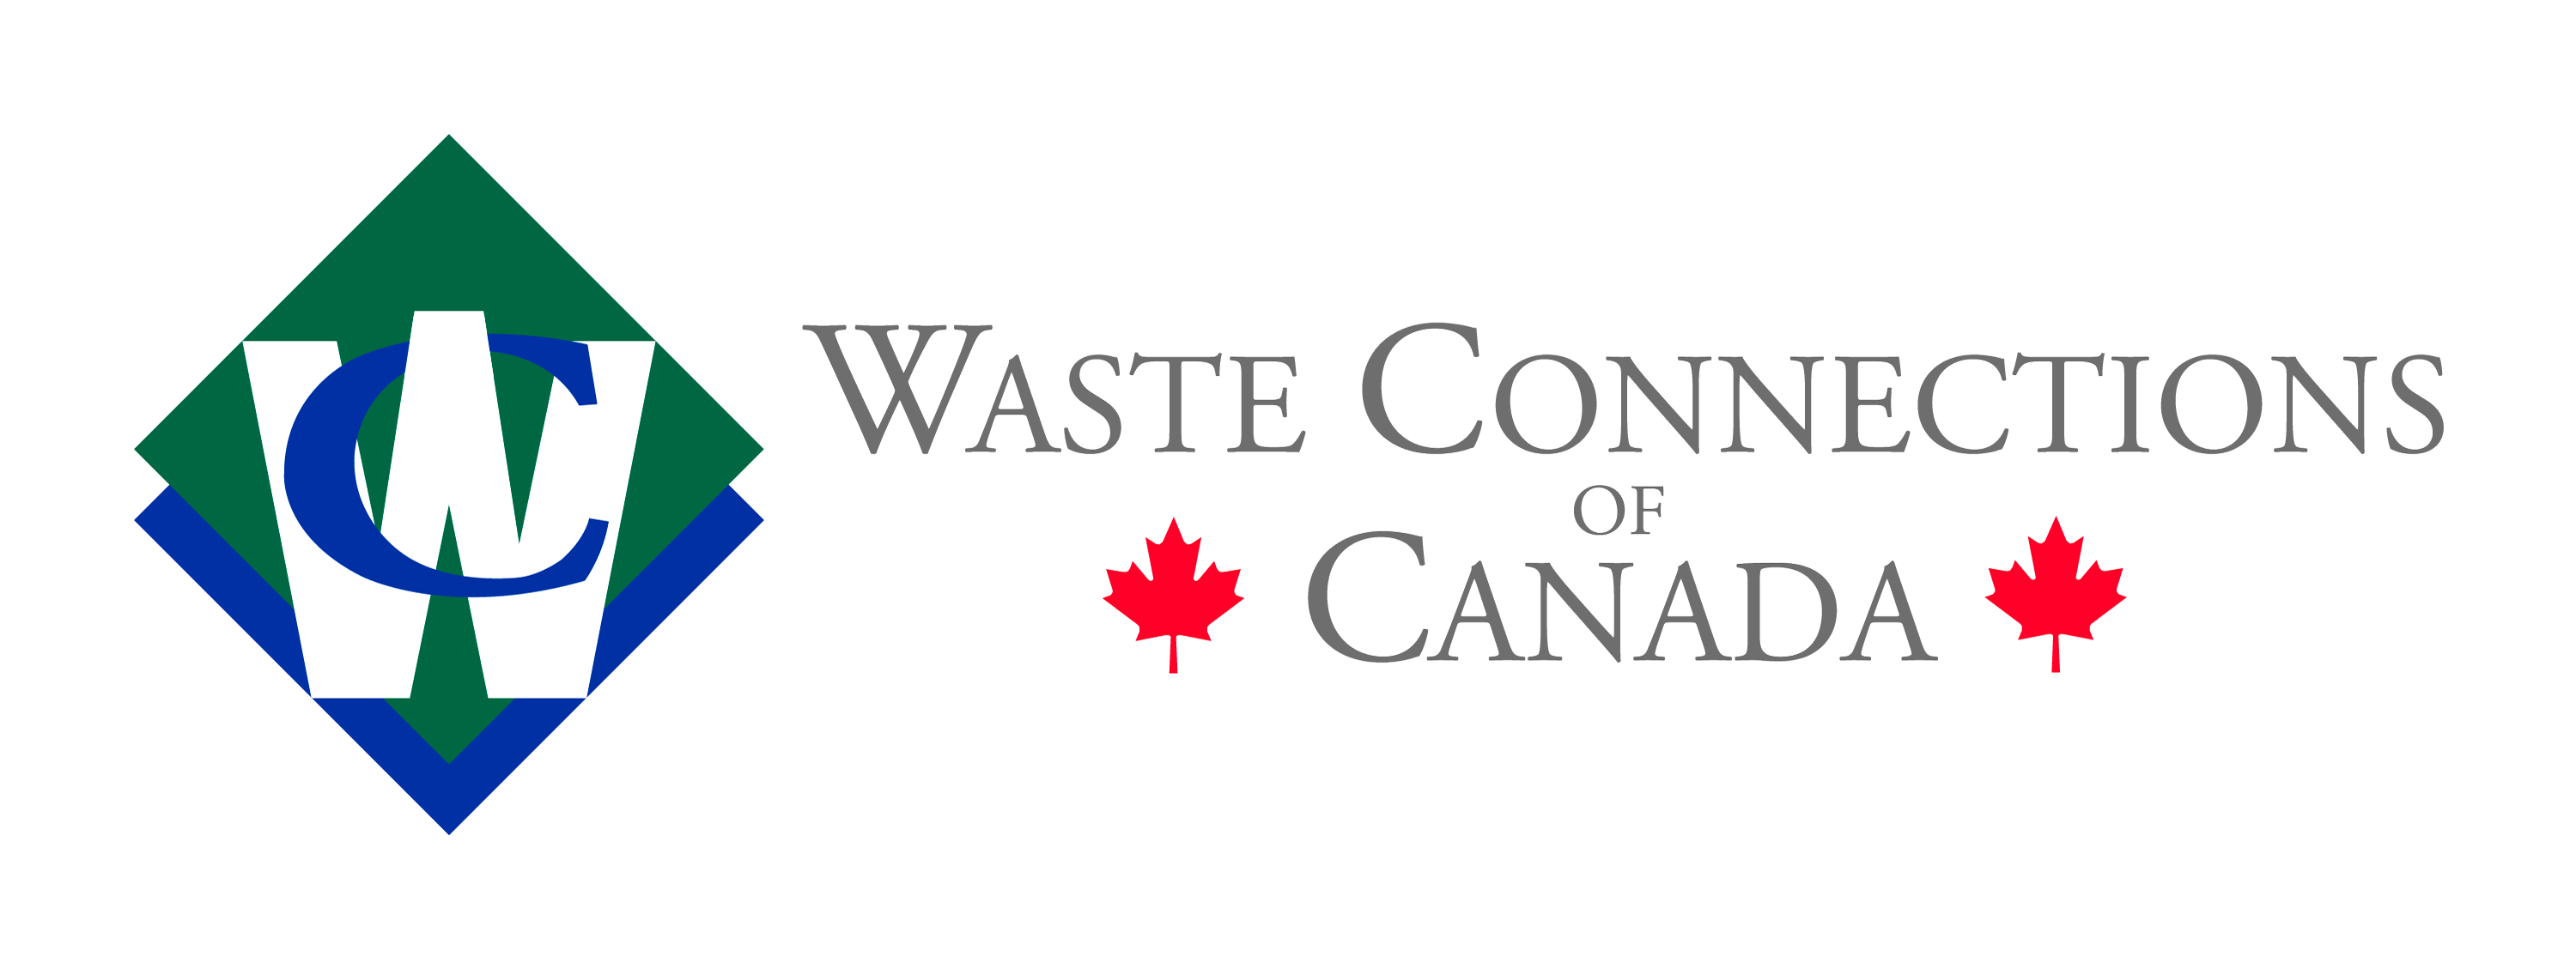 Waste Connections of Canada (logo)